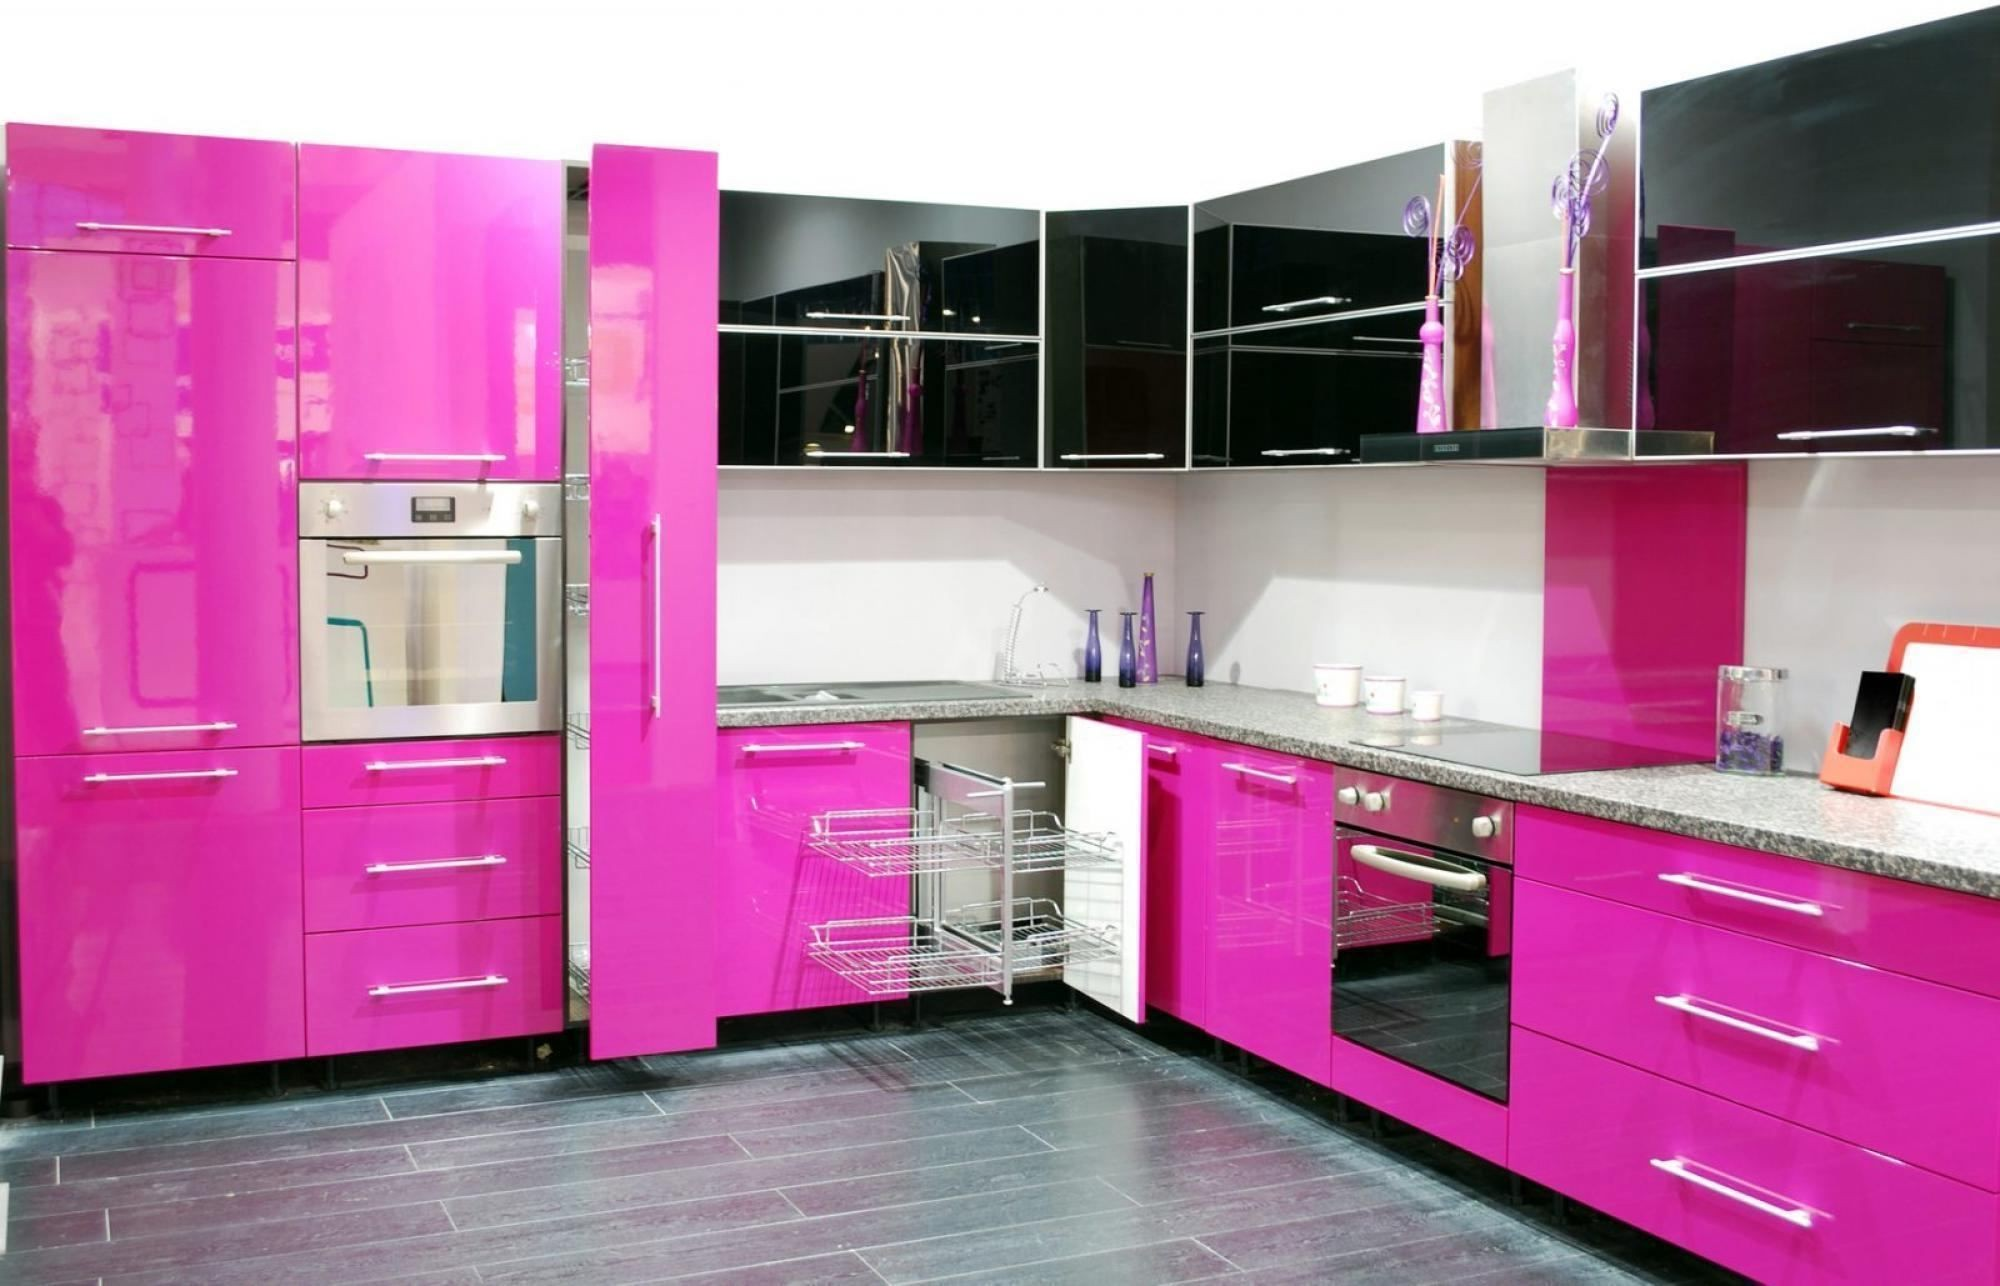 Kitchen Modern Pink Kitchen Old Fashioned Fireplace Built In Oven And Microwave Metal Frame Bar Stools Black Polished Marble Floor Rectangular Brown High